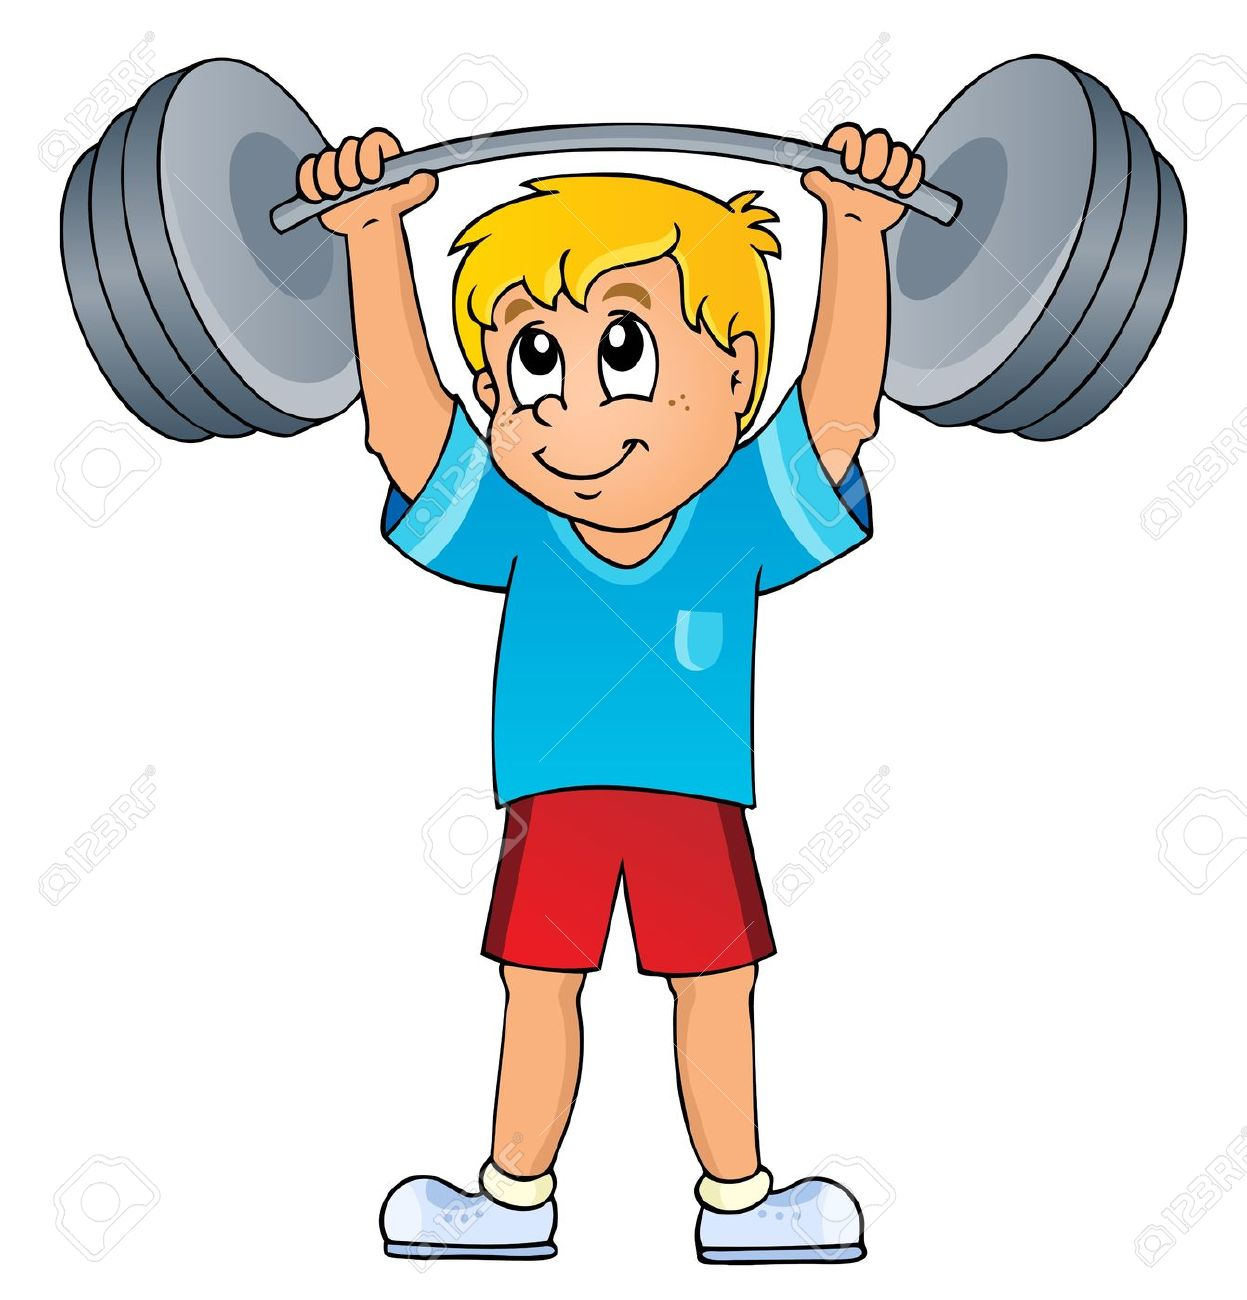 Weight lifting clipart #10